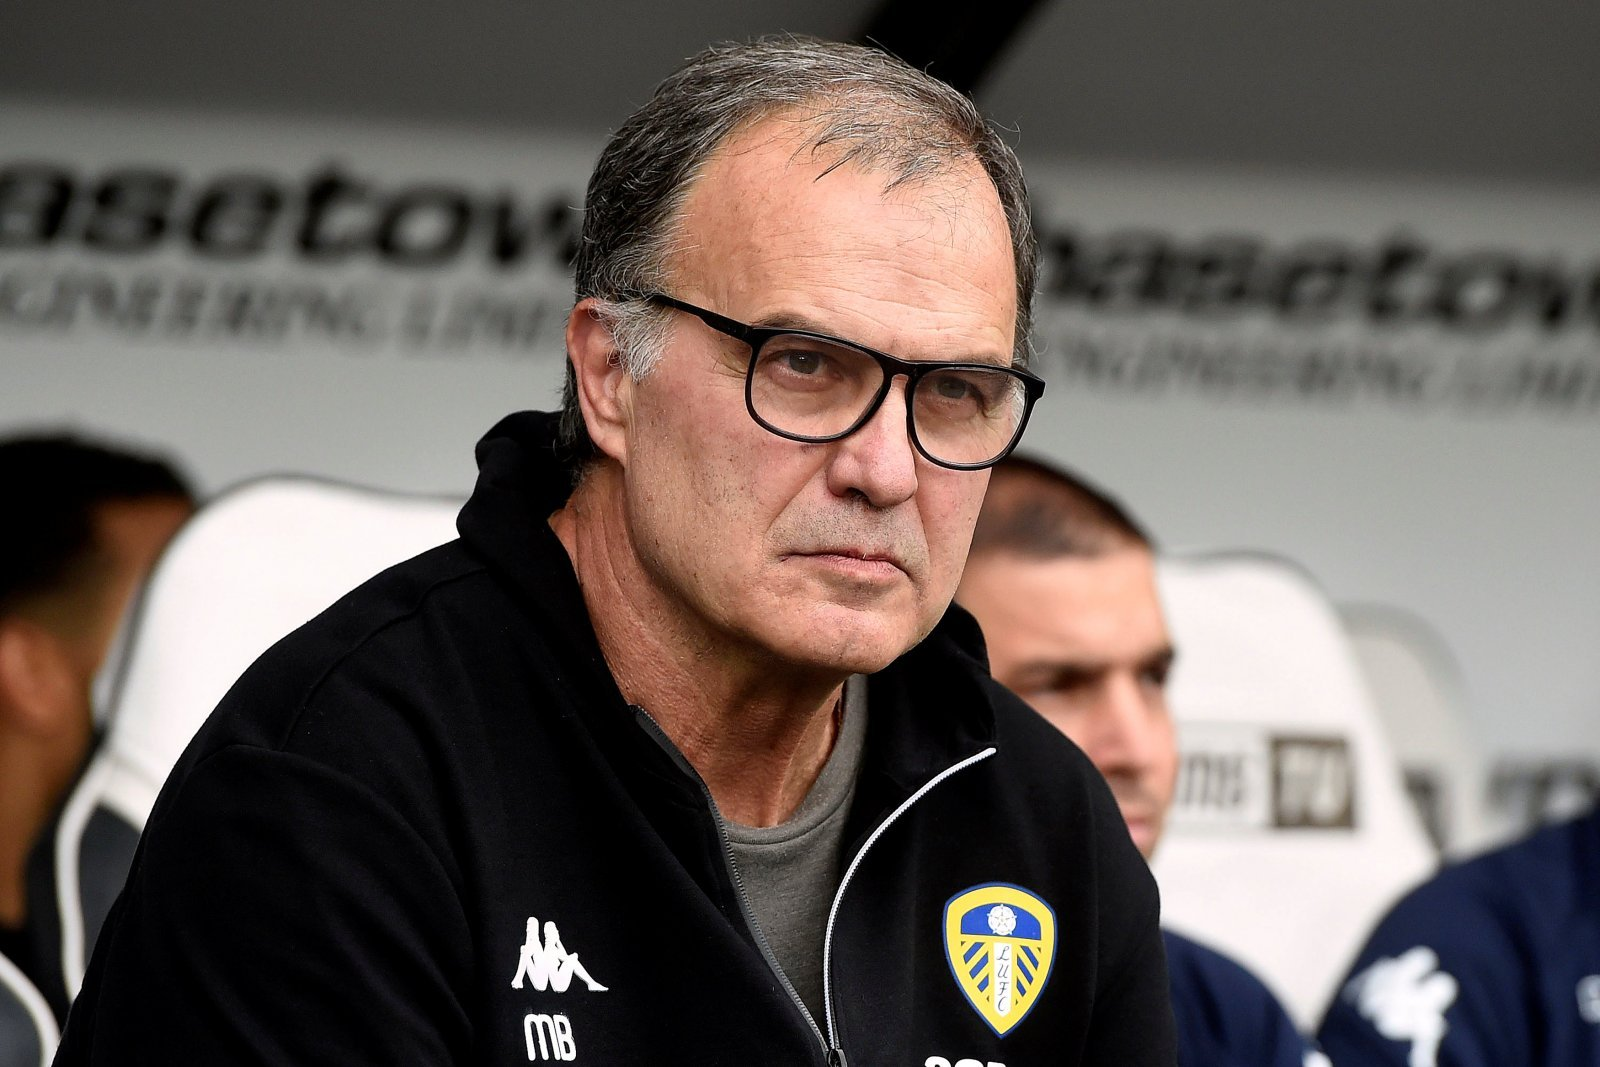 Trust in youth might shows Leeds squad might be feeling the heat already